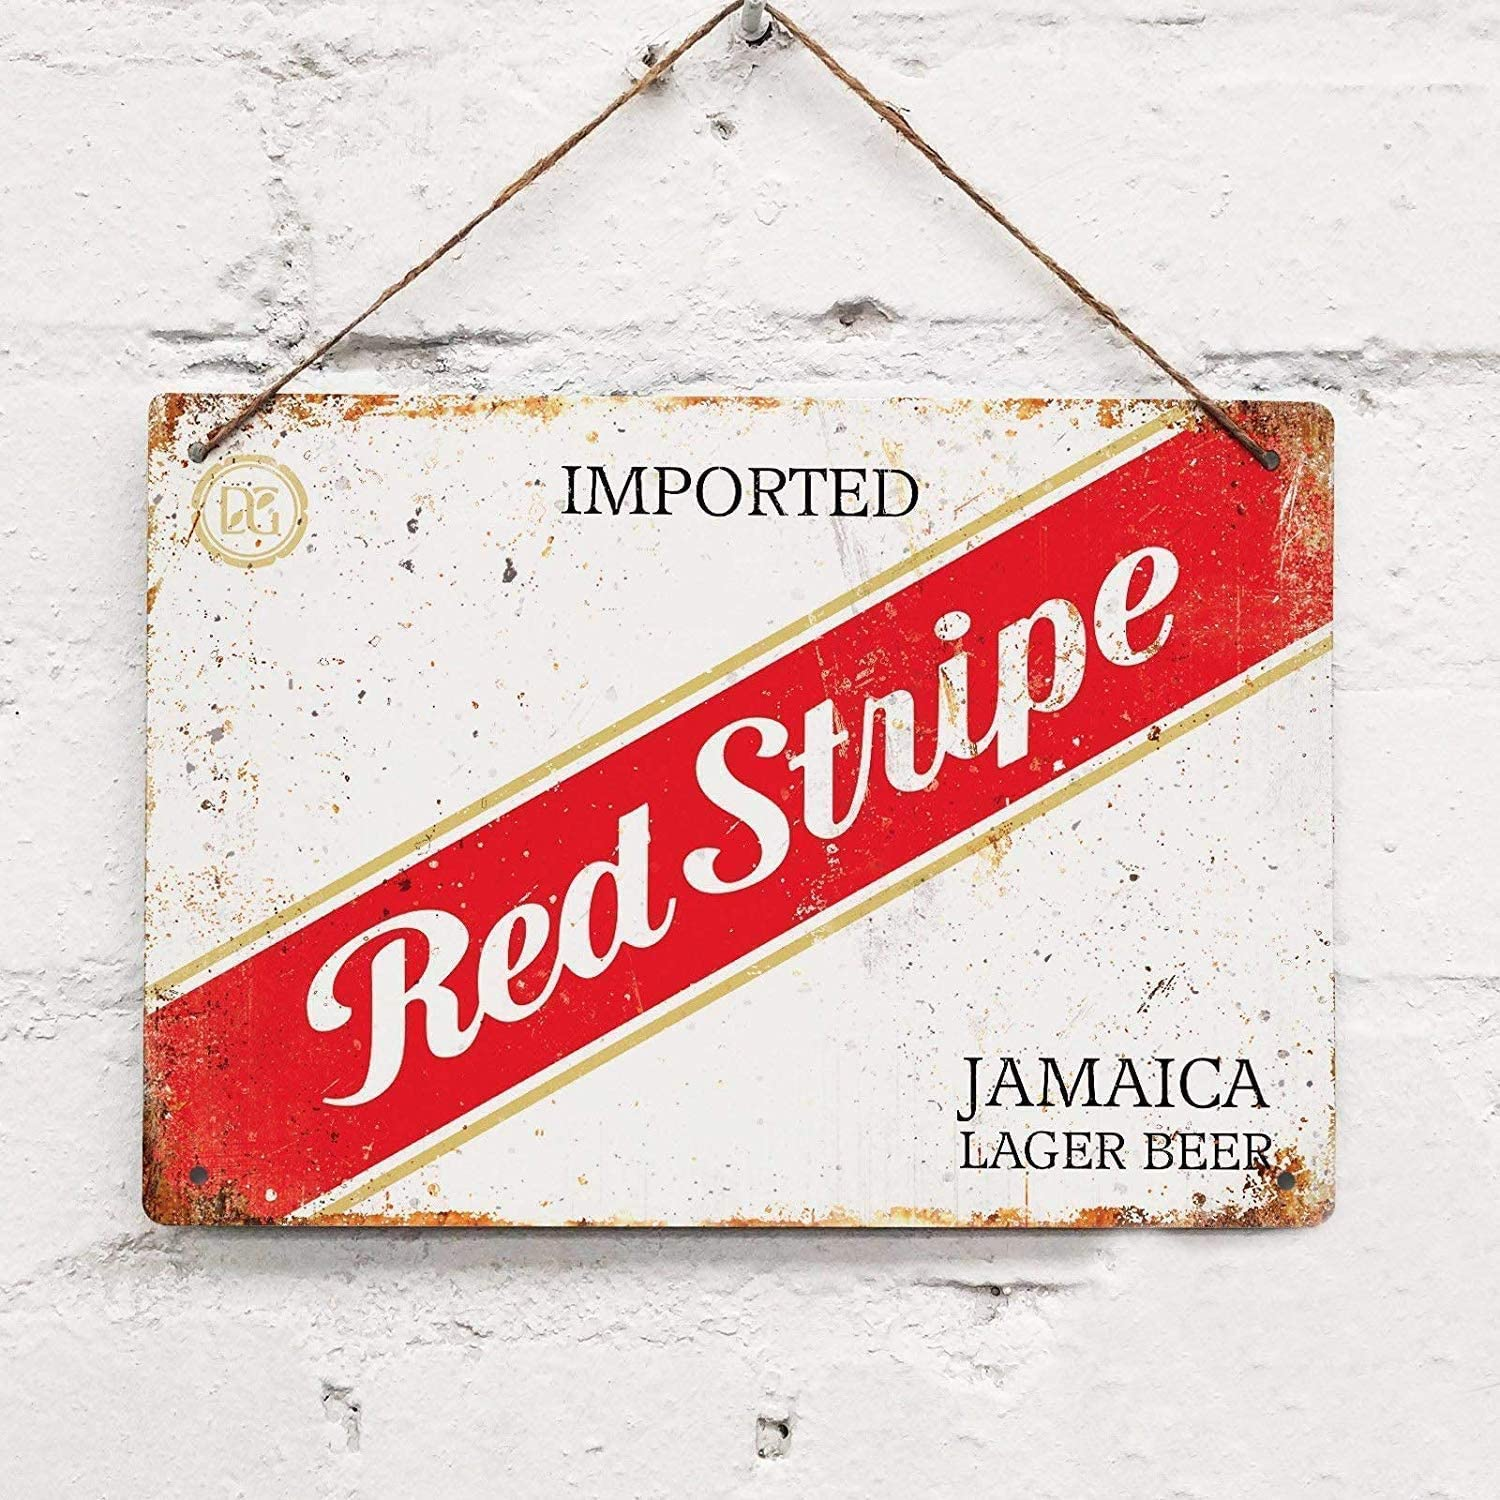 Background Wall Decoration Red Stripe Jamaican Beer Tin Sign 8x12 inches